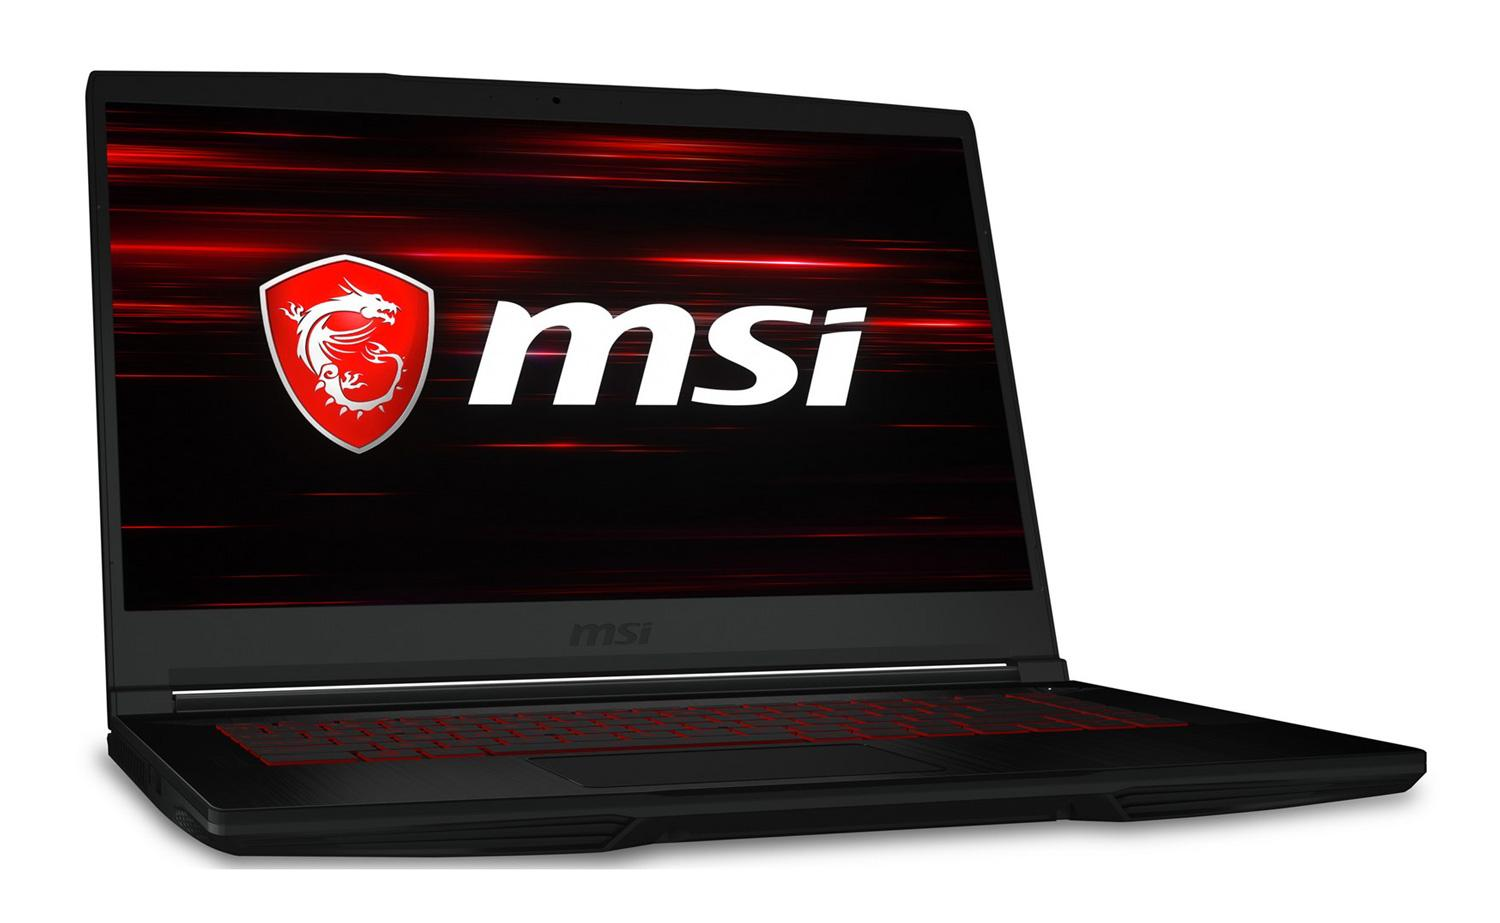 Ordinateur portable MSI GF63 8RC-290FR - GTX 1050, IPS - photo 7